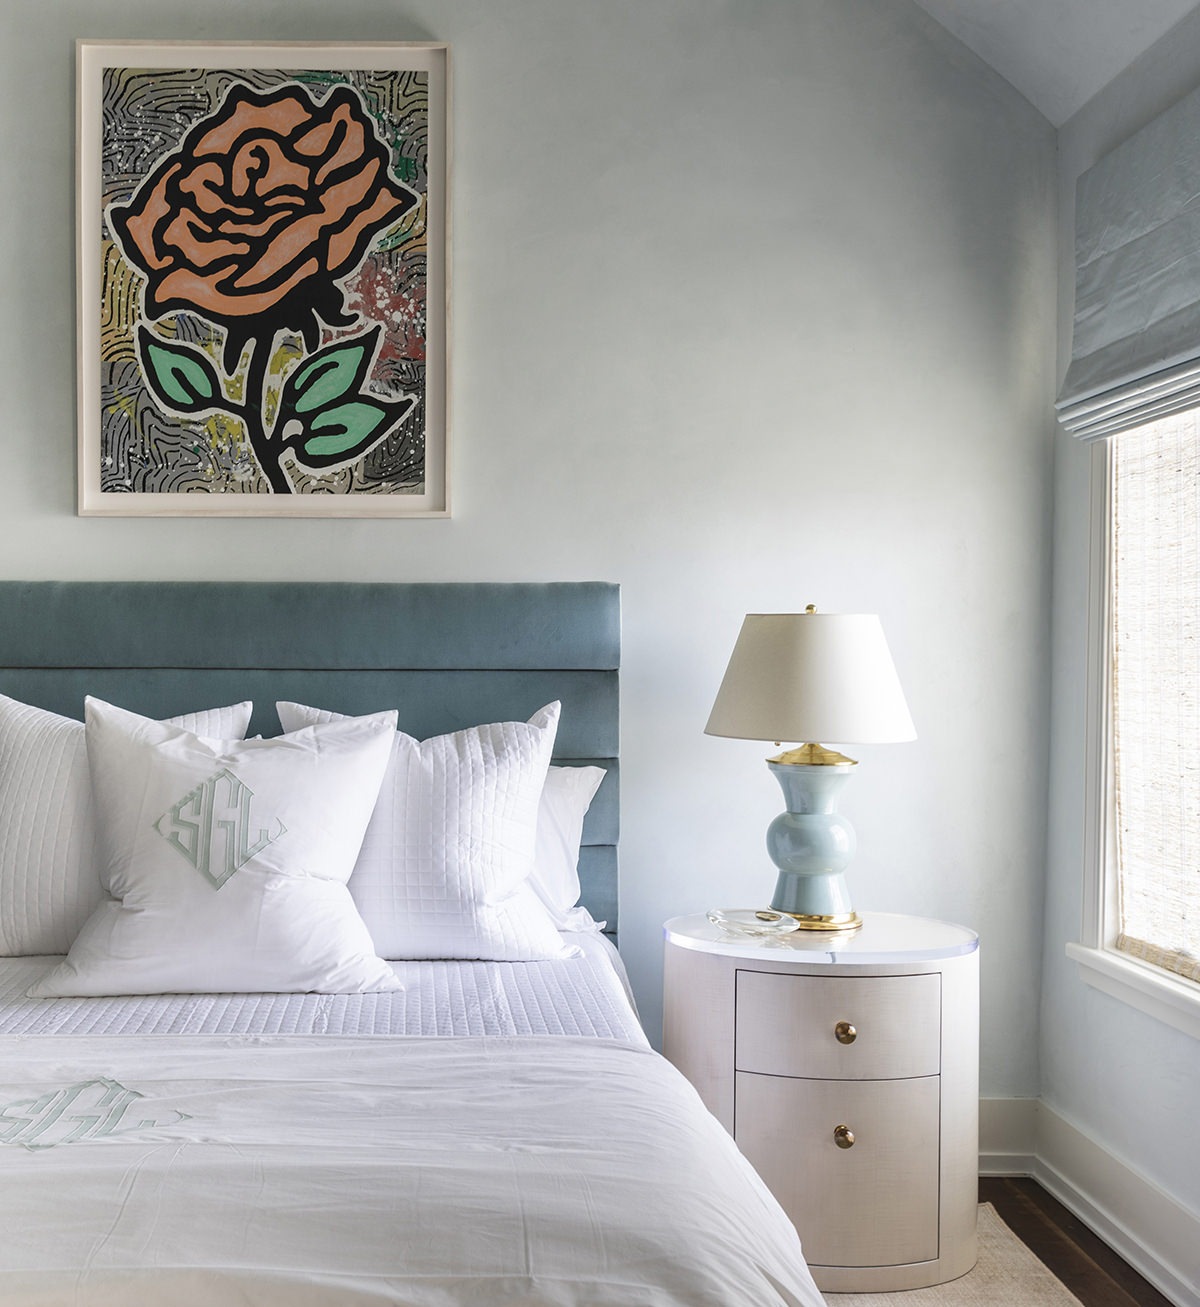 bedroom featuring rose artwork above bed